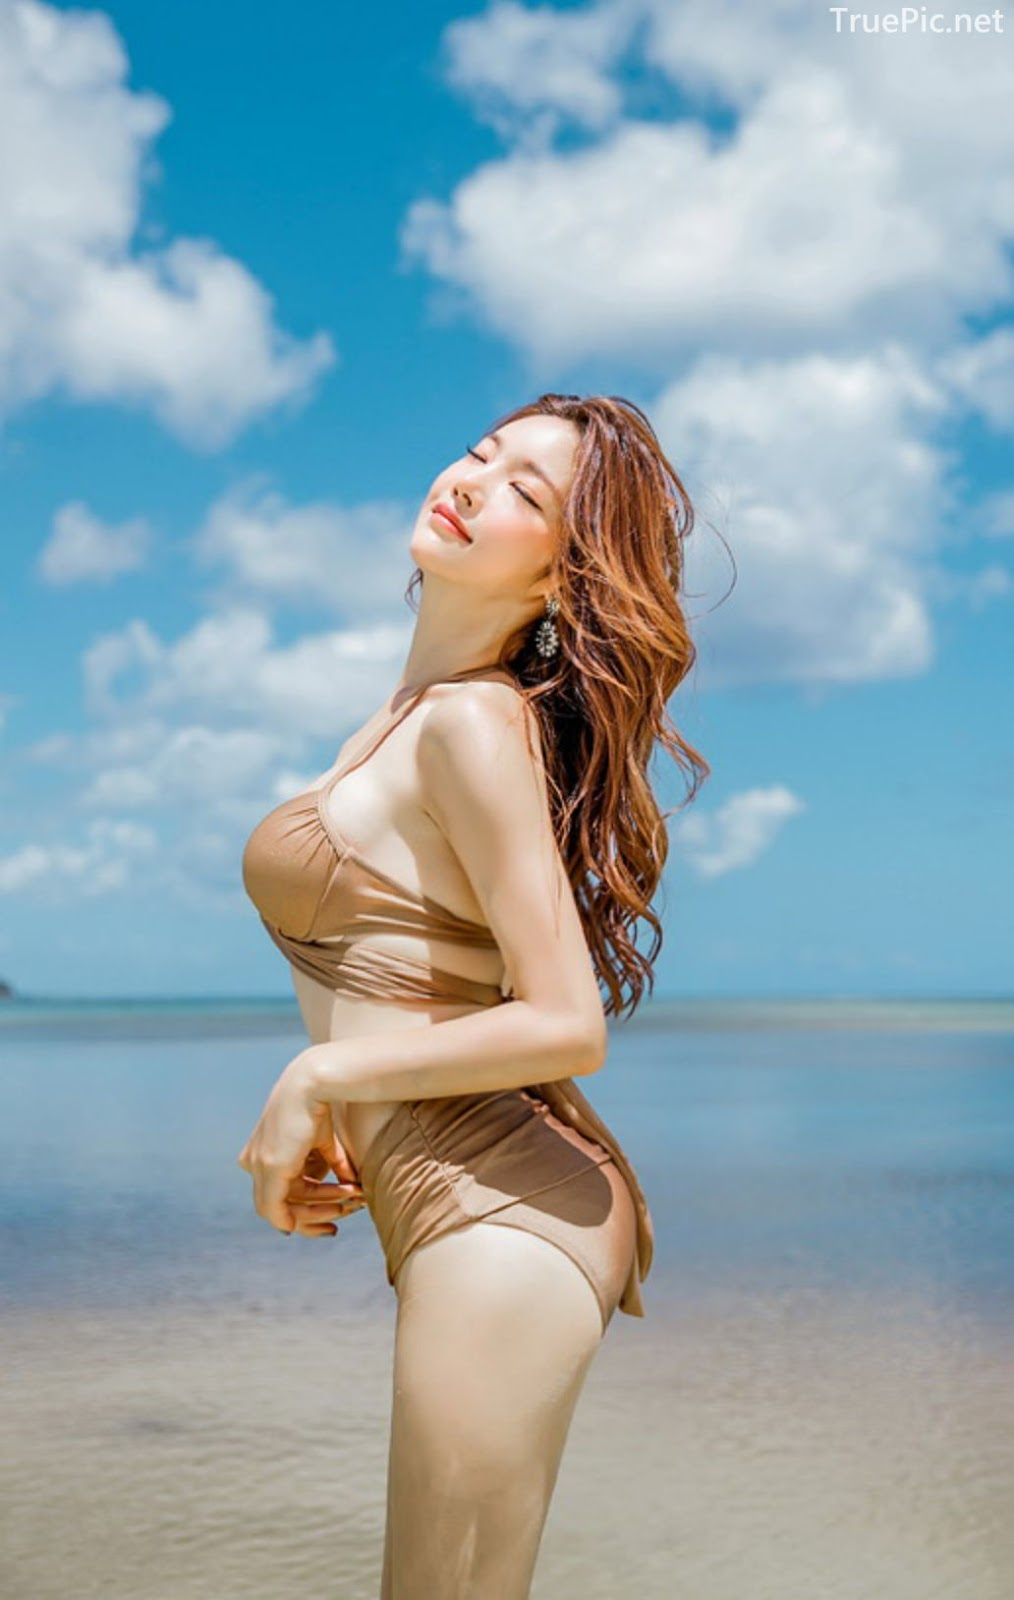 Park Jeong Yoon - Geullaemrouge Gold Bikini - Korean model and fashion - Picture 6